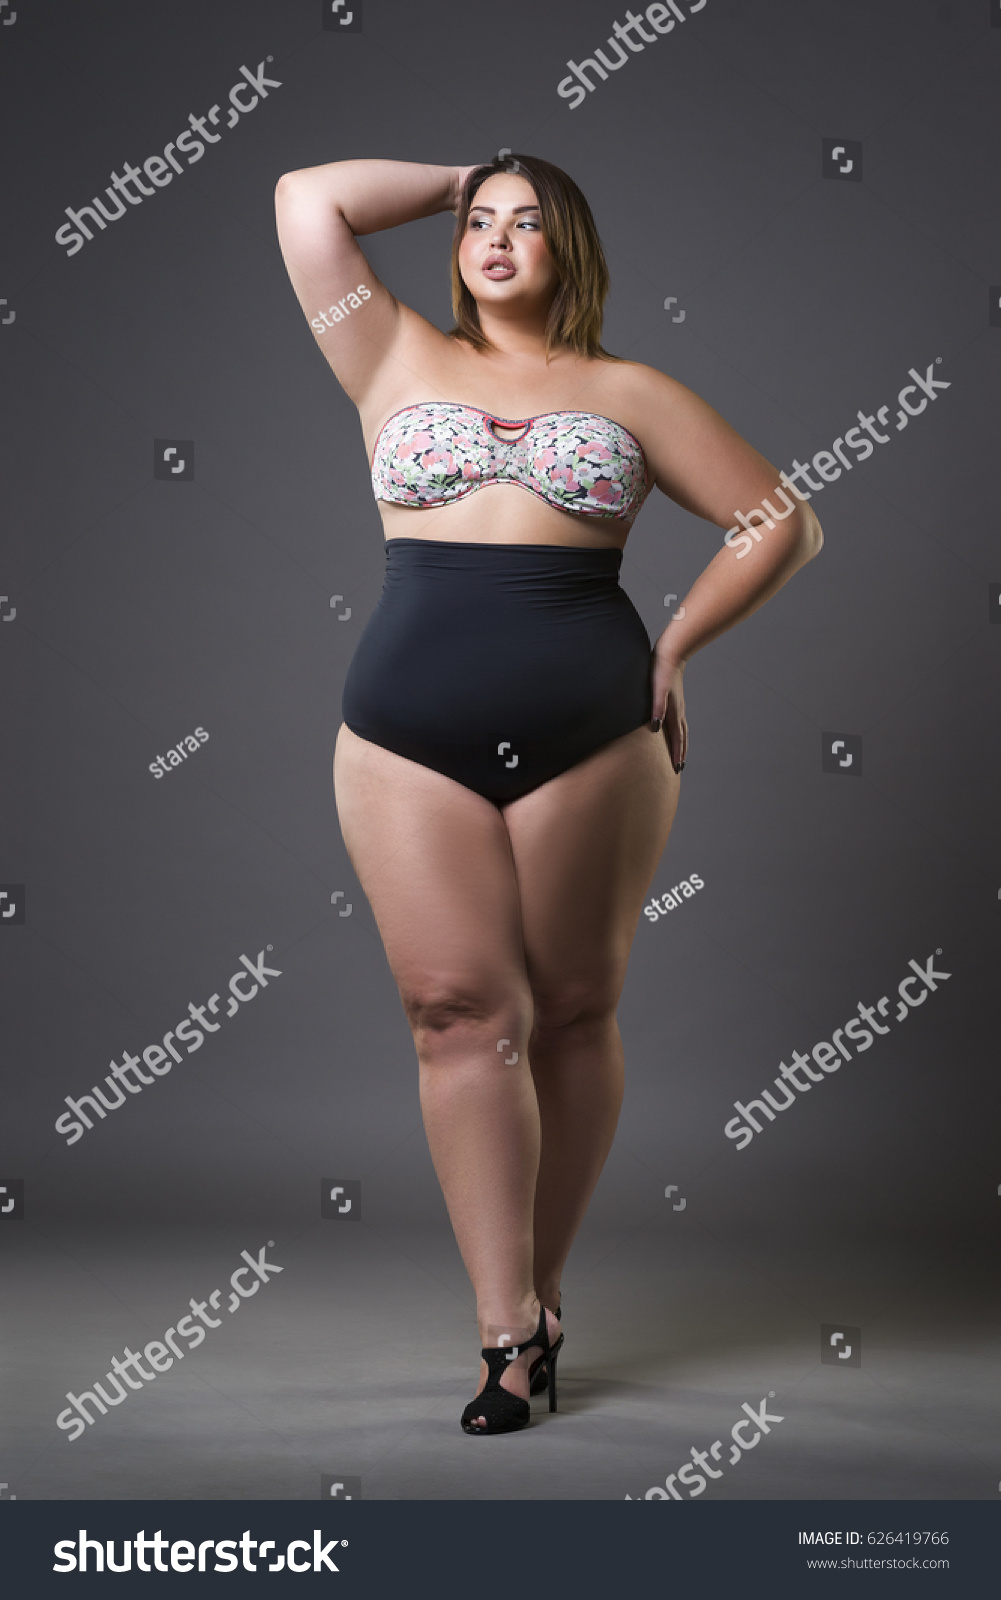 Agree, rather Sexy clothes for over weight women this